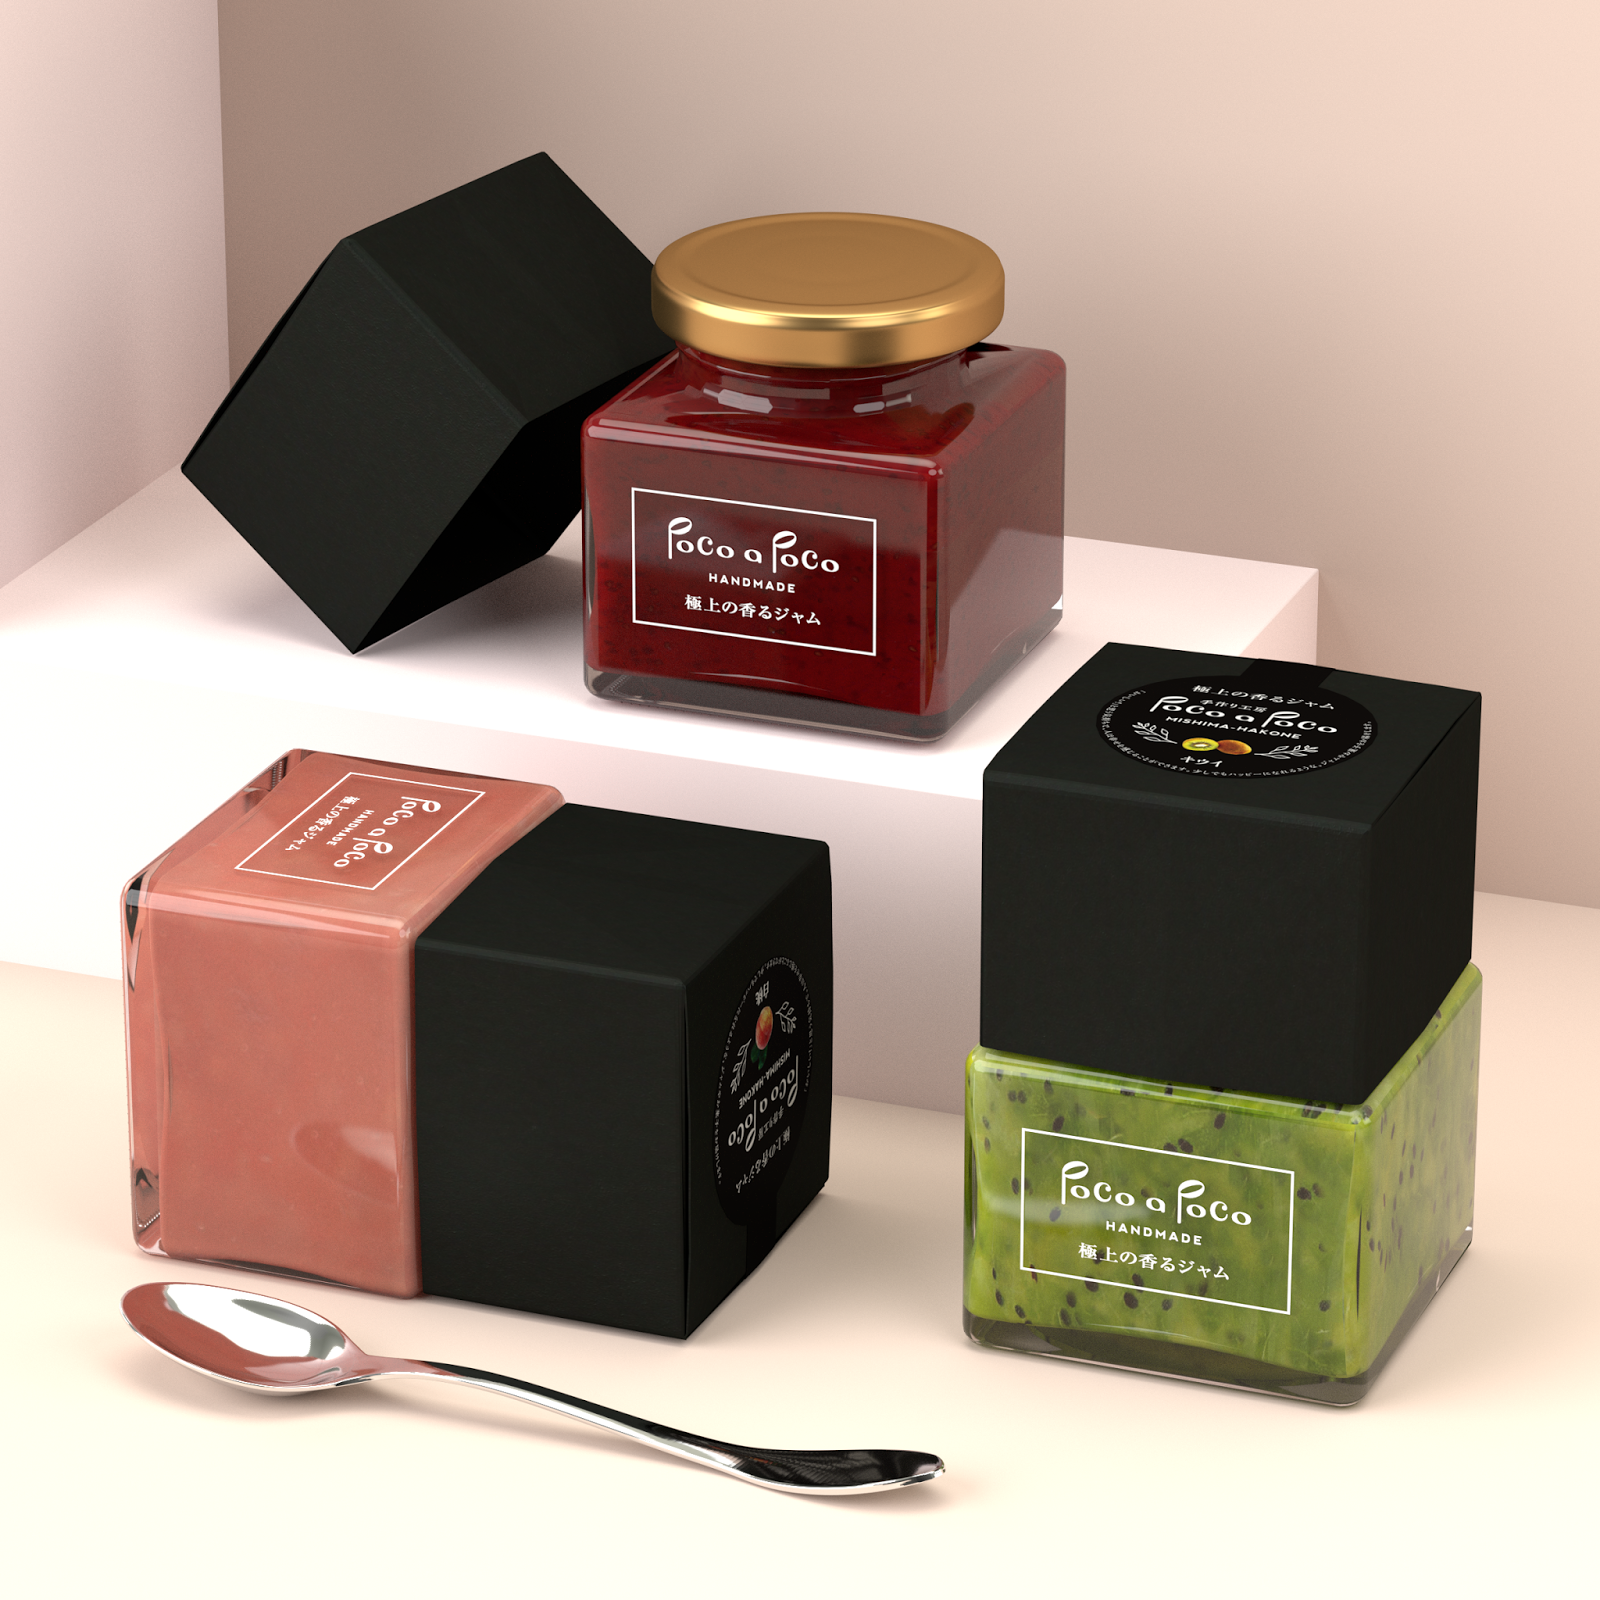 Un packaging de confiture qui ressemble à du vernis à ongles